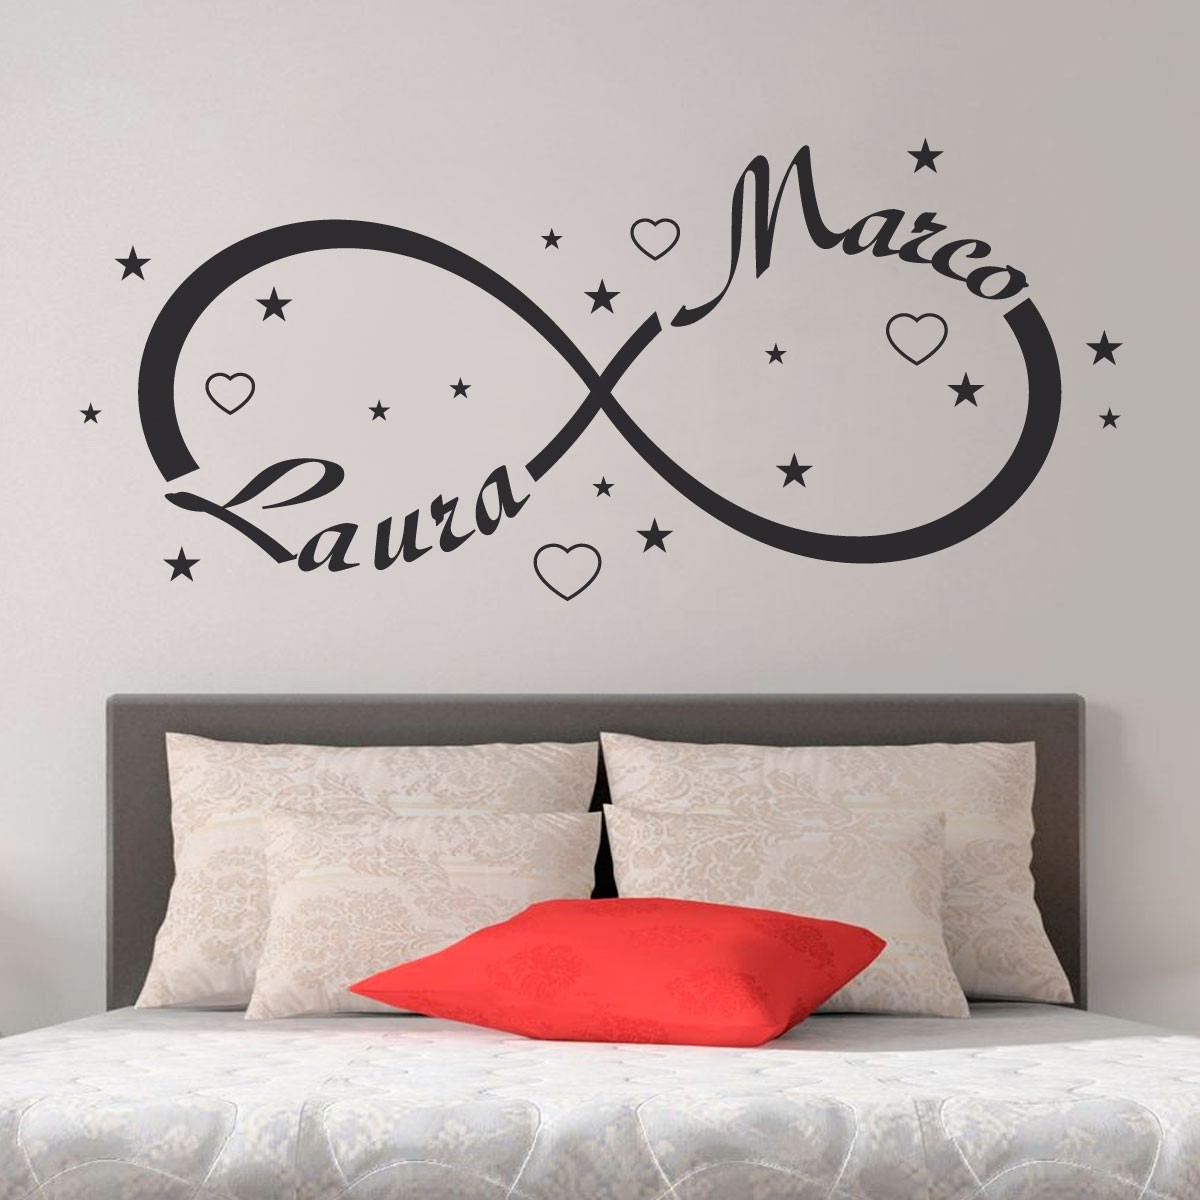 Wall Sticker Adesivi Murali Camera da Letto | Gigio Store - Gigio ...